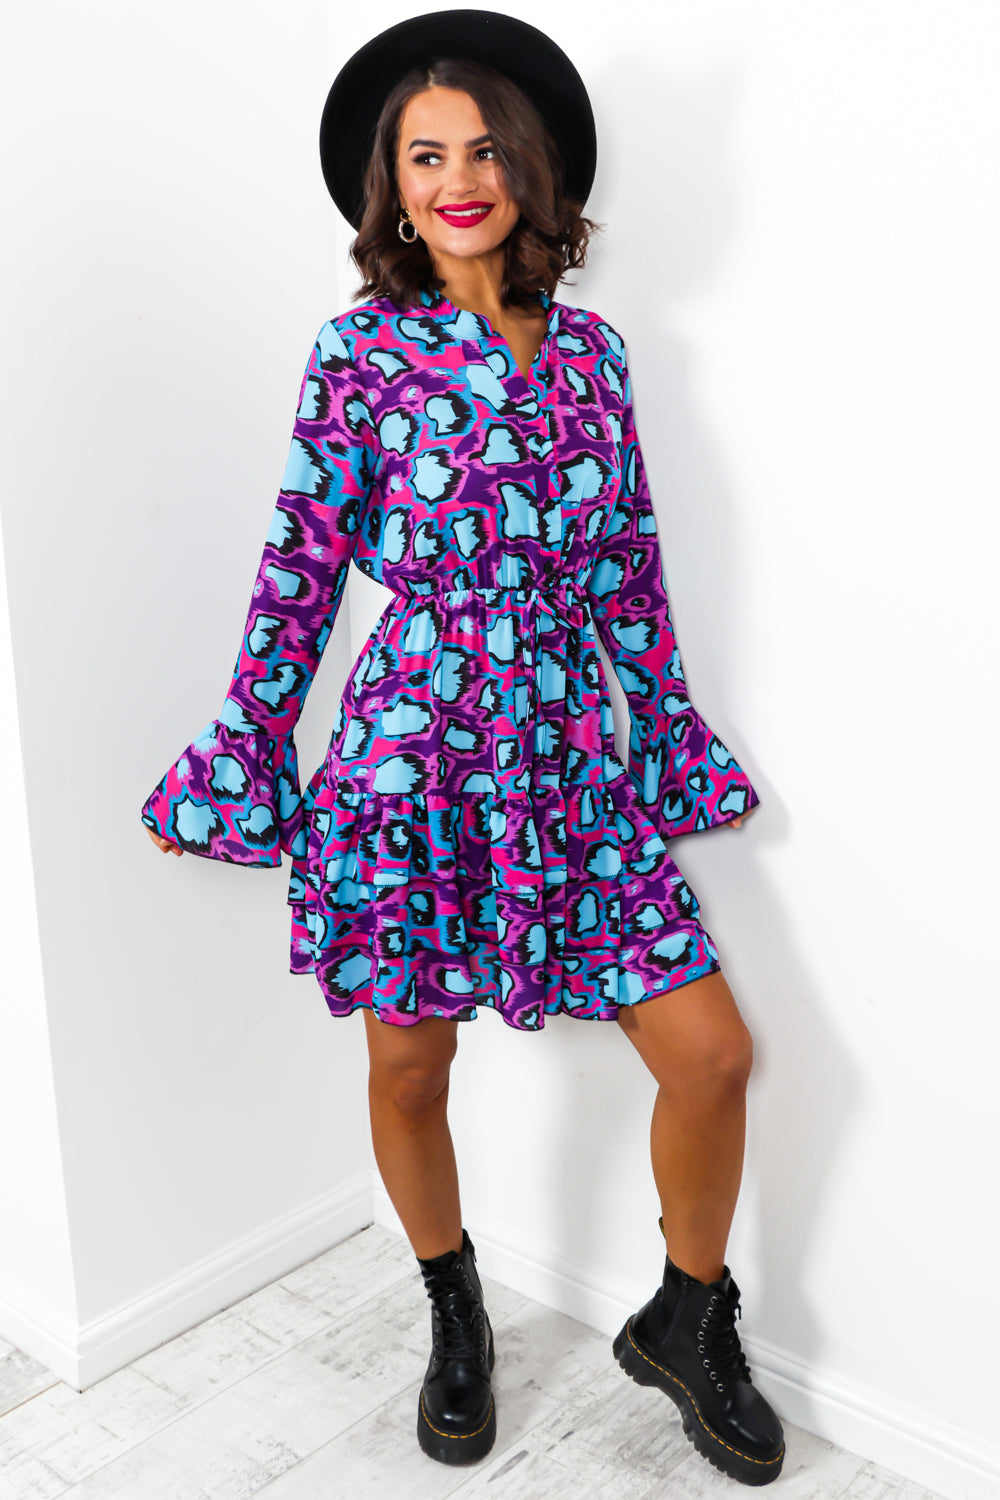 Animal Instincts - Dress In PURPLE/MULTI